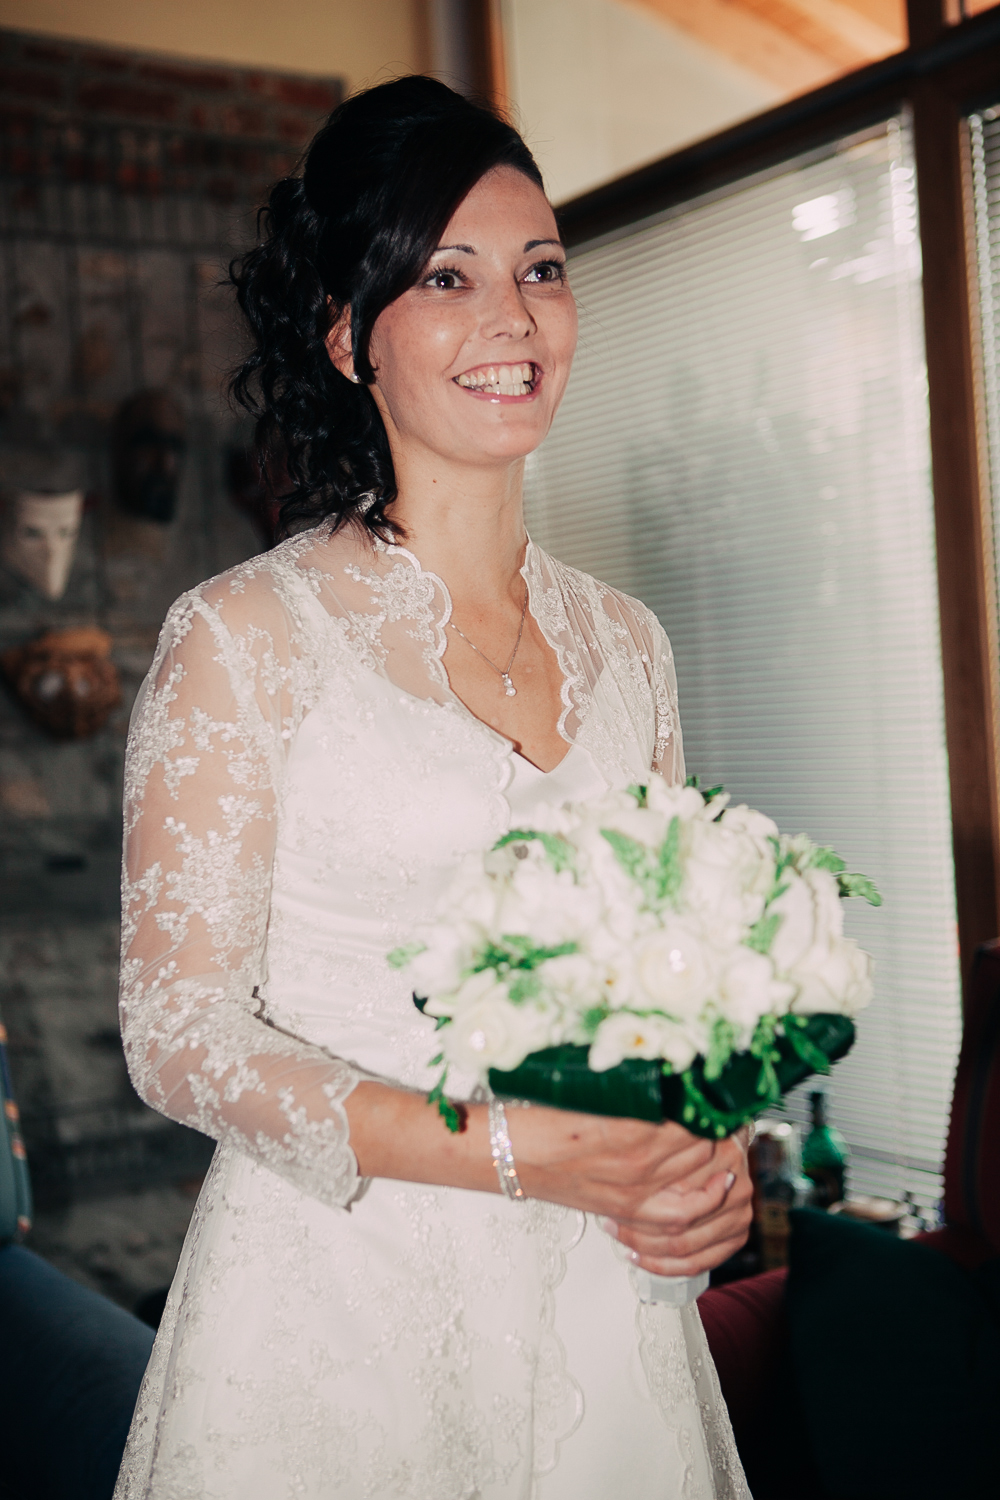 Wedding06_Paola_Meloni_007.jpg